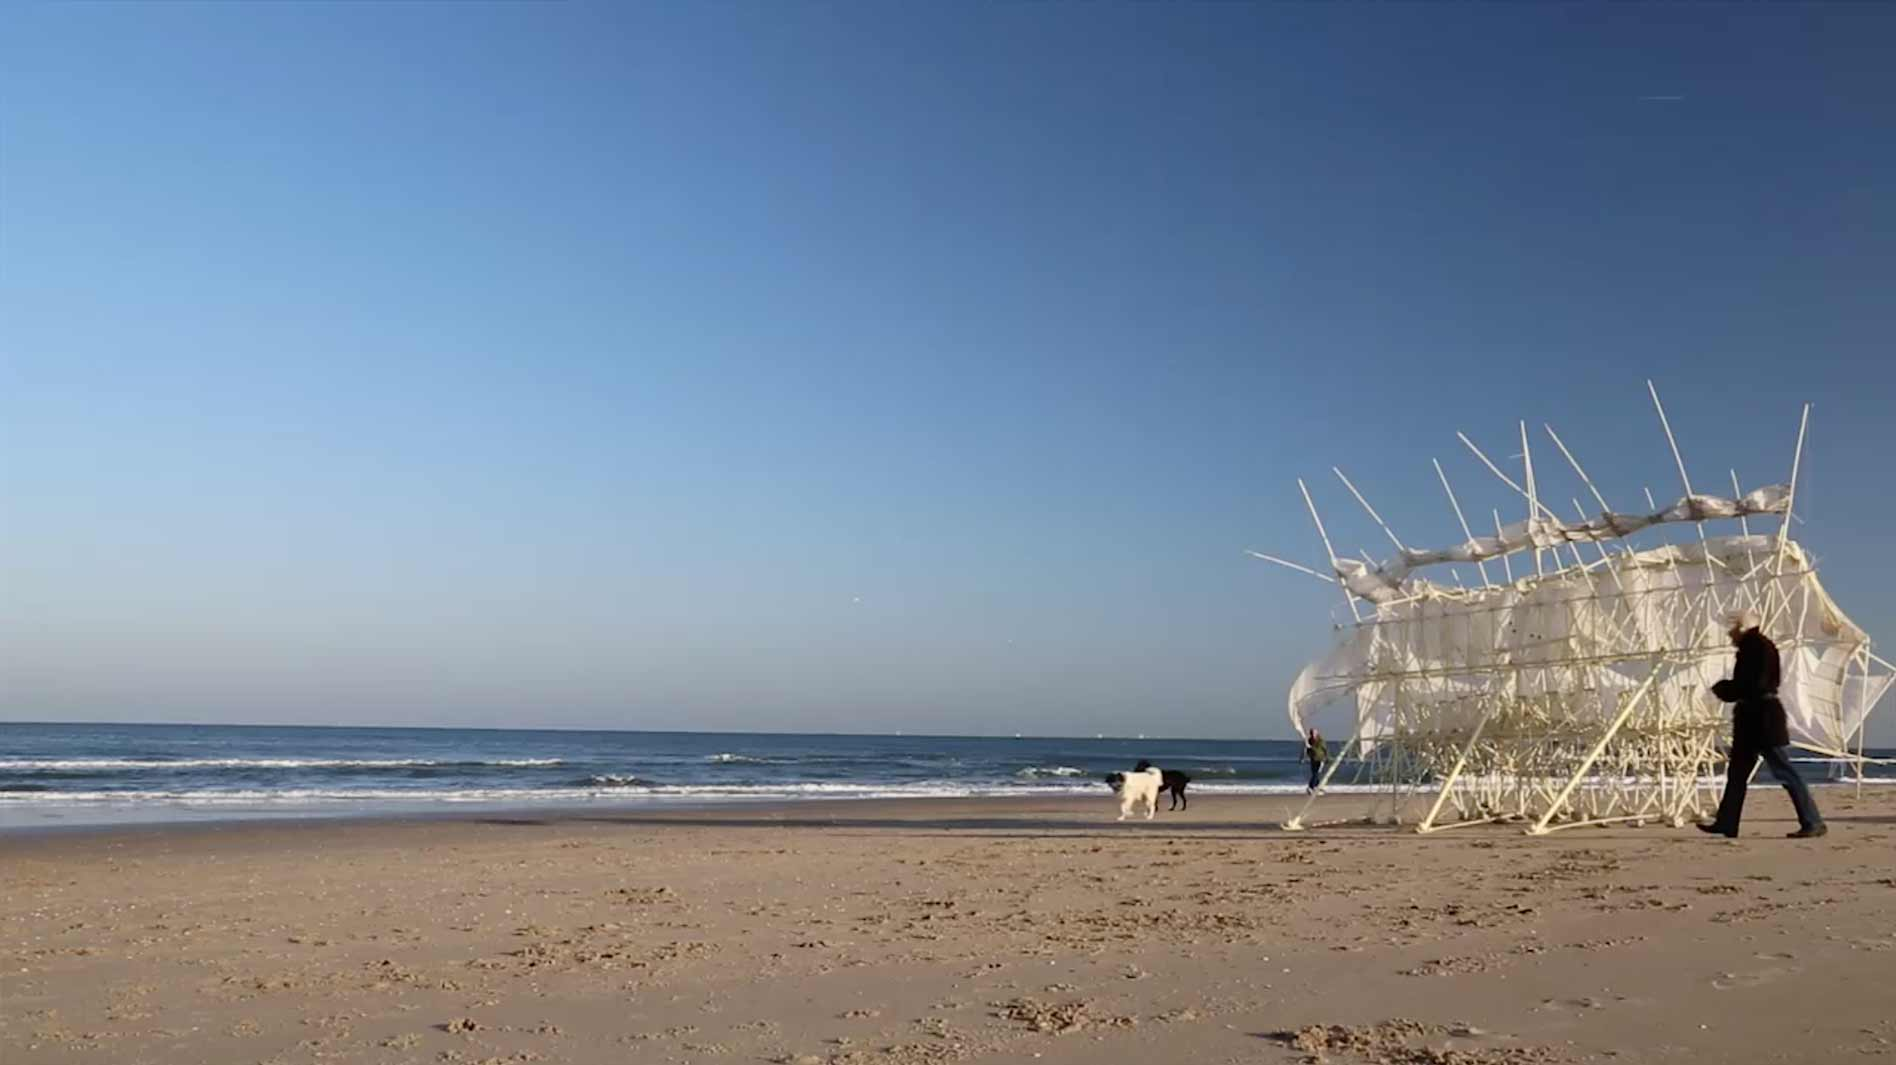 Theo on the beach with a Strandbeest